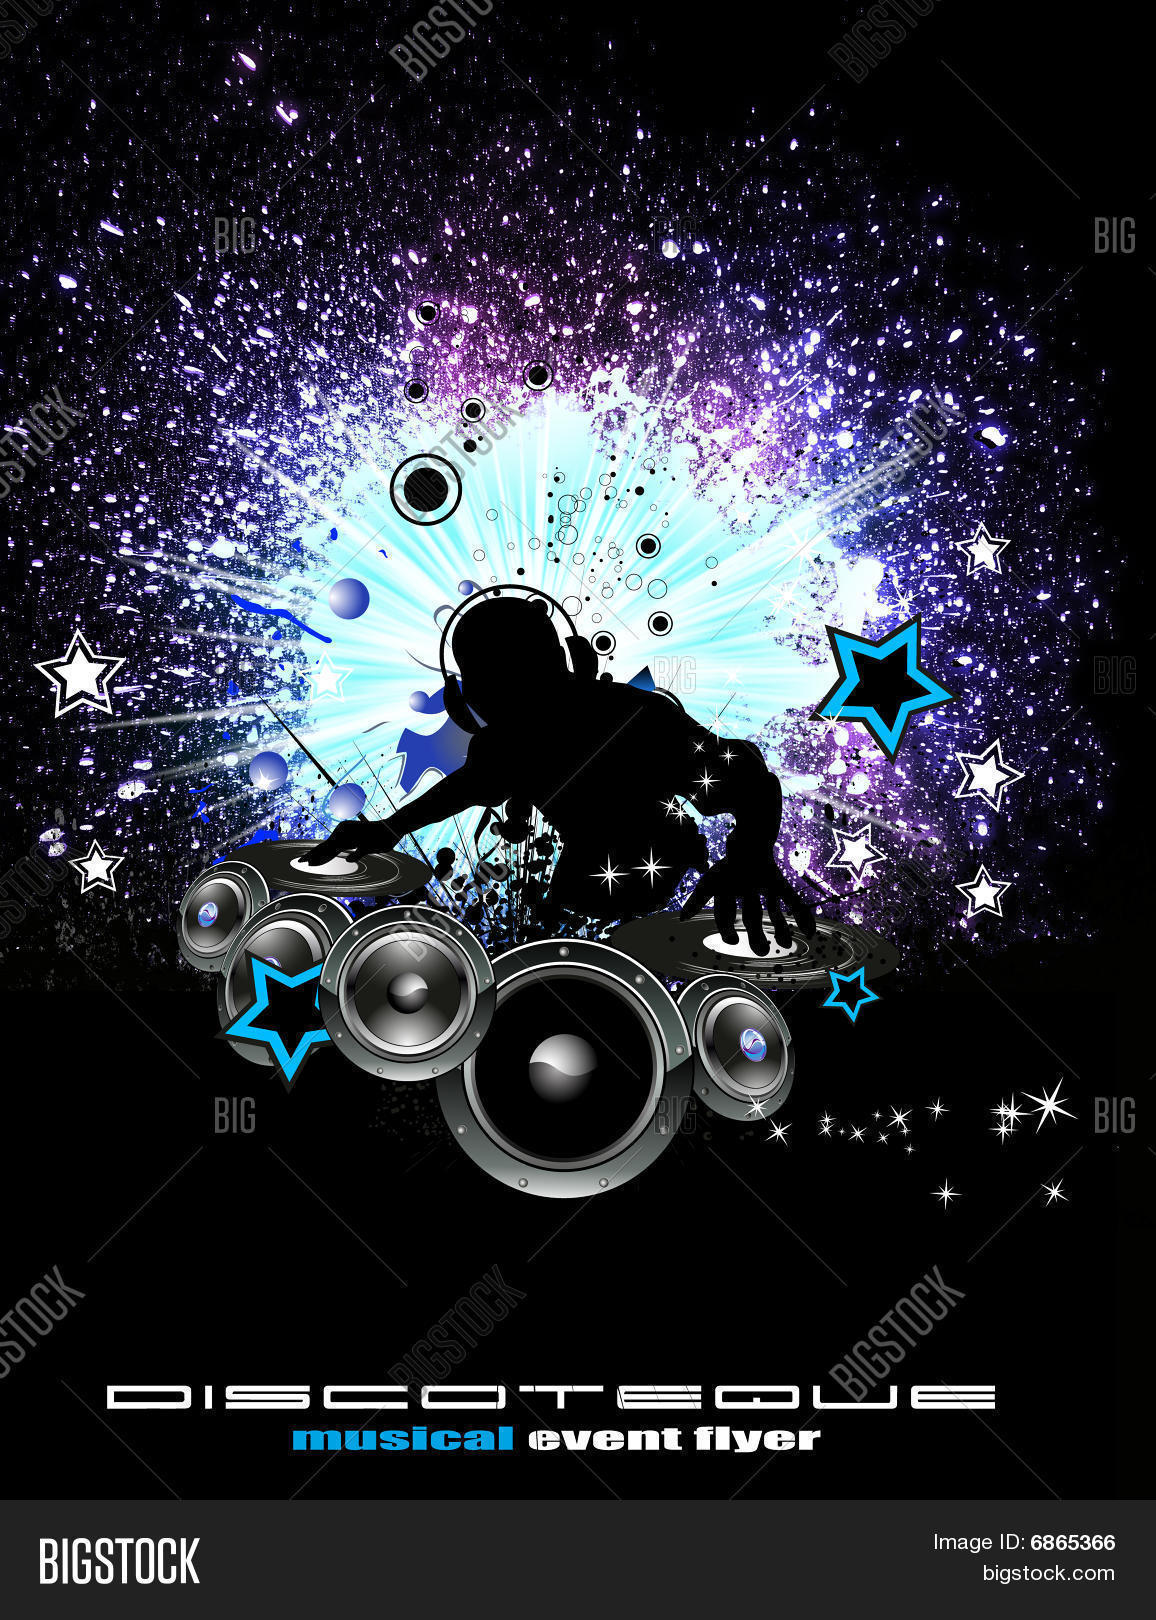 Music Event Background Image Photo Free Trial Bigstock